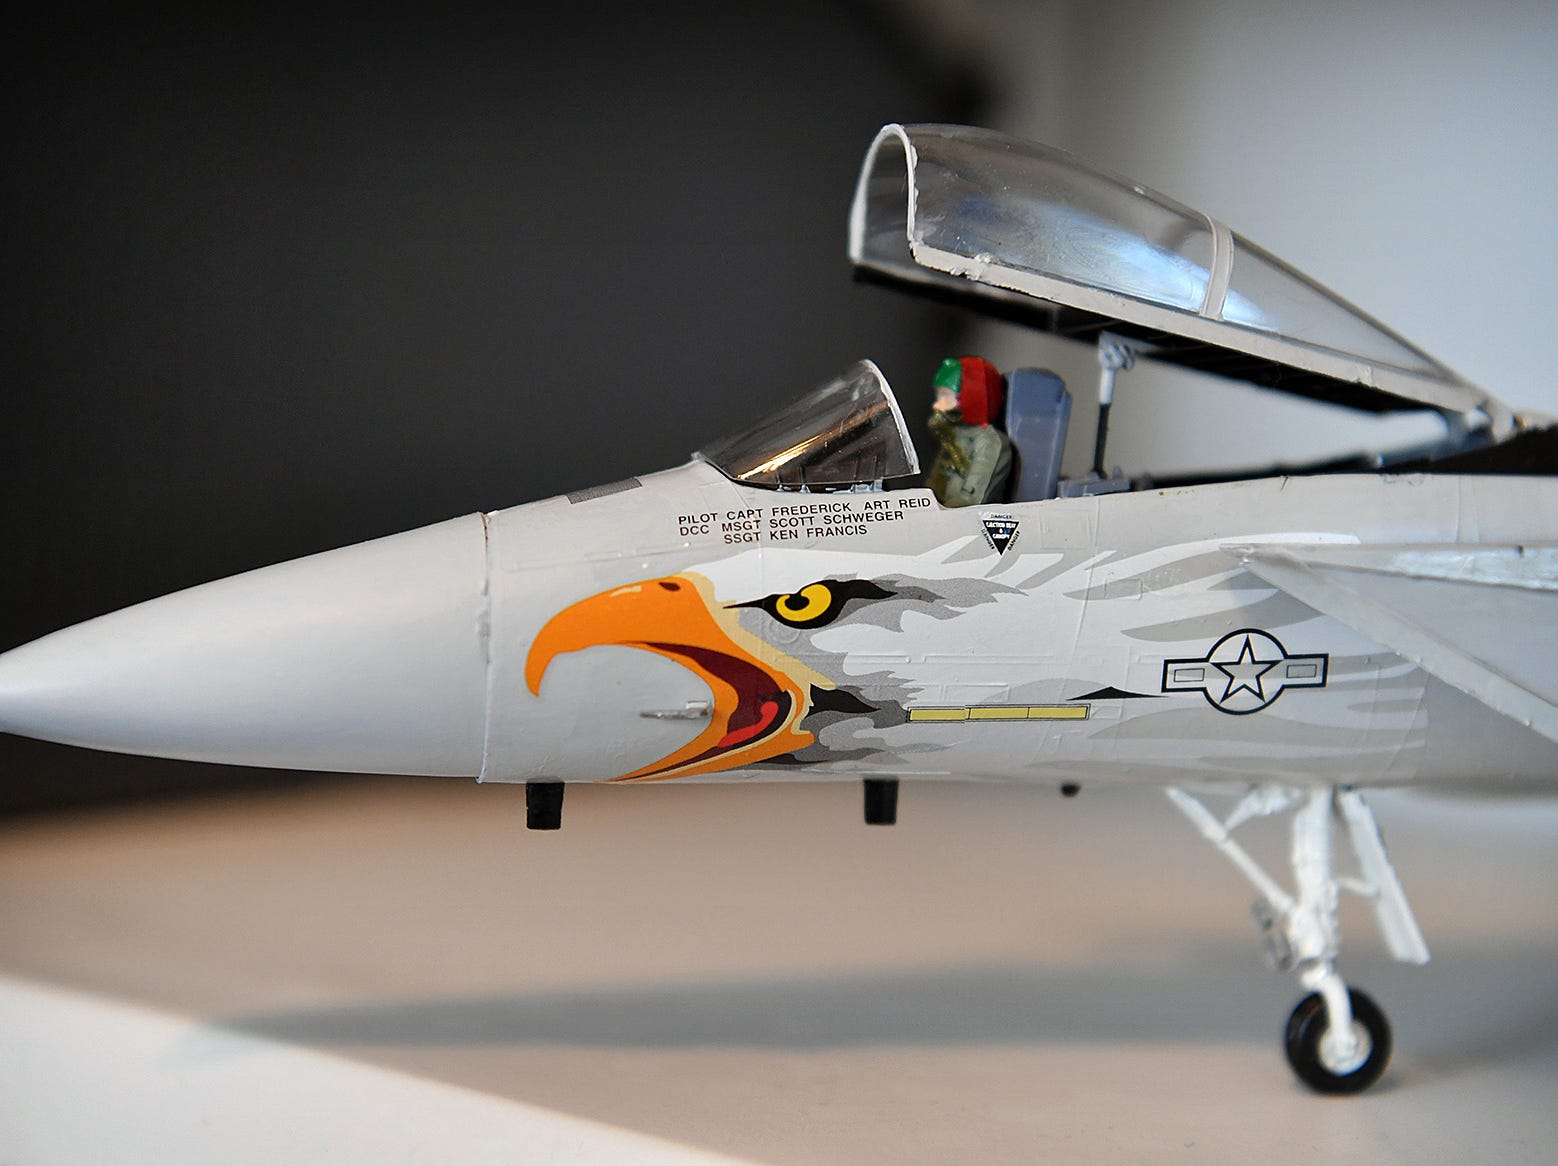 Military aircraft models built by Jack Riddle have plenty of detail including using authentic U.S. military colors.